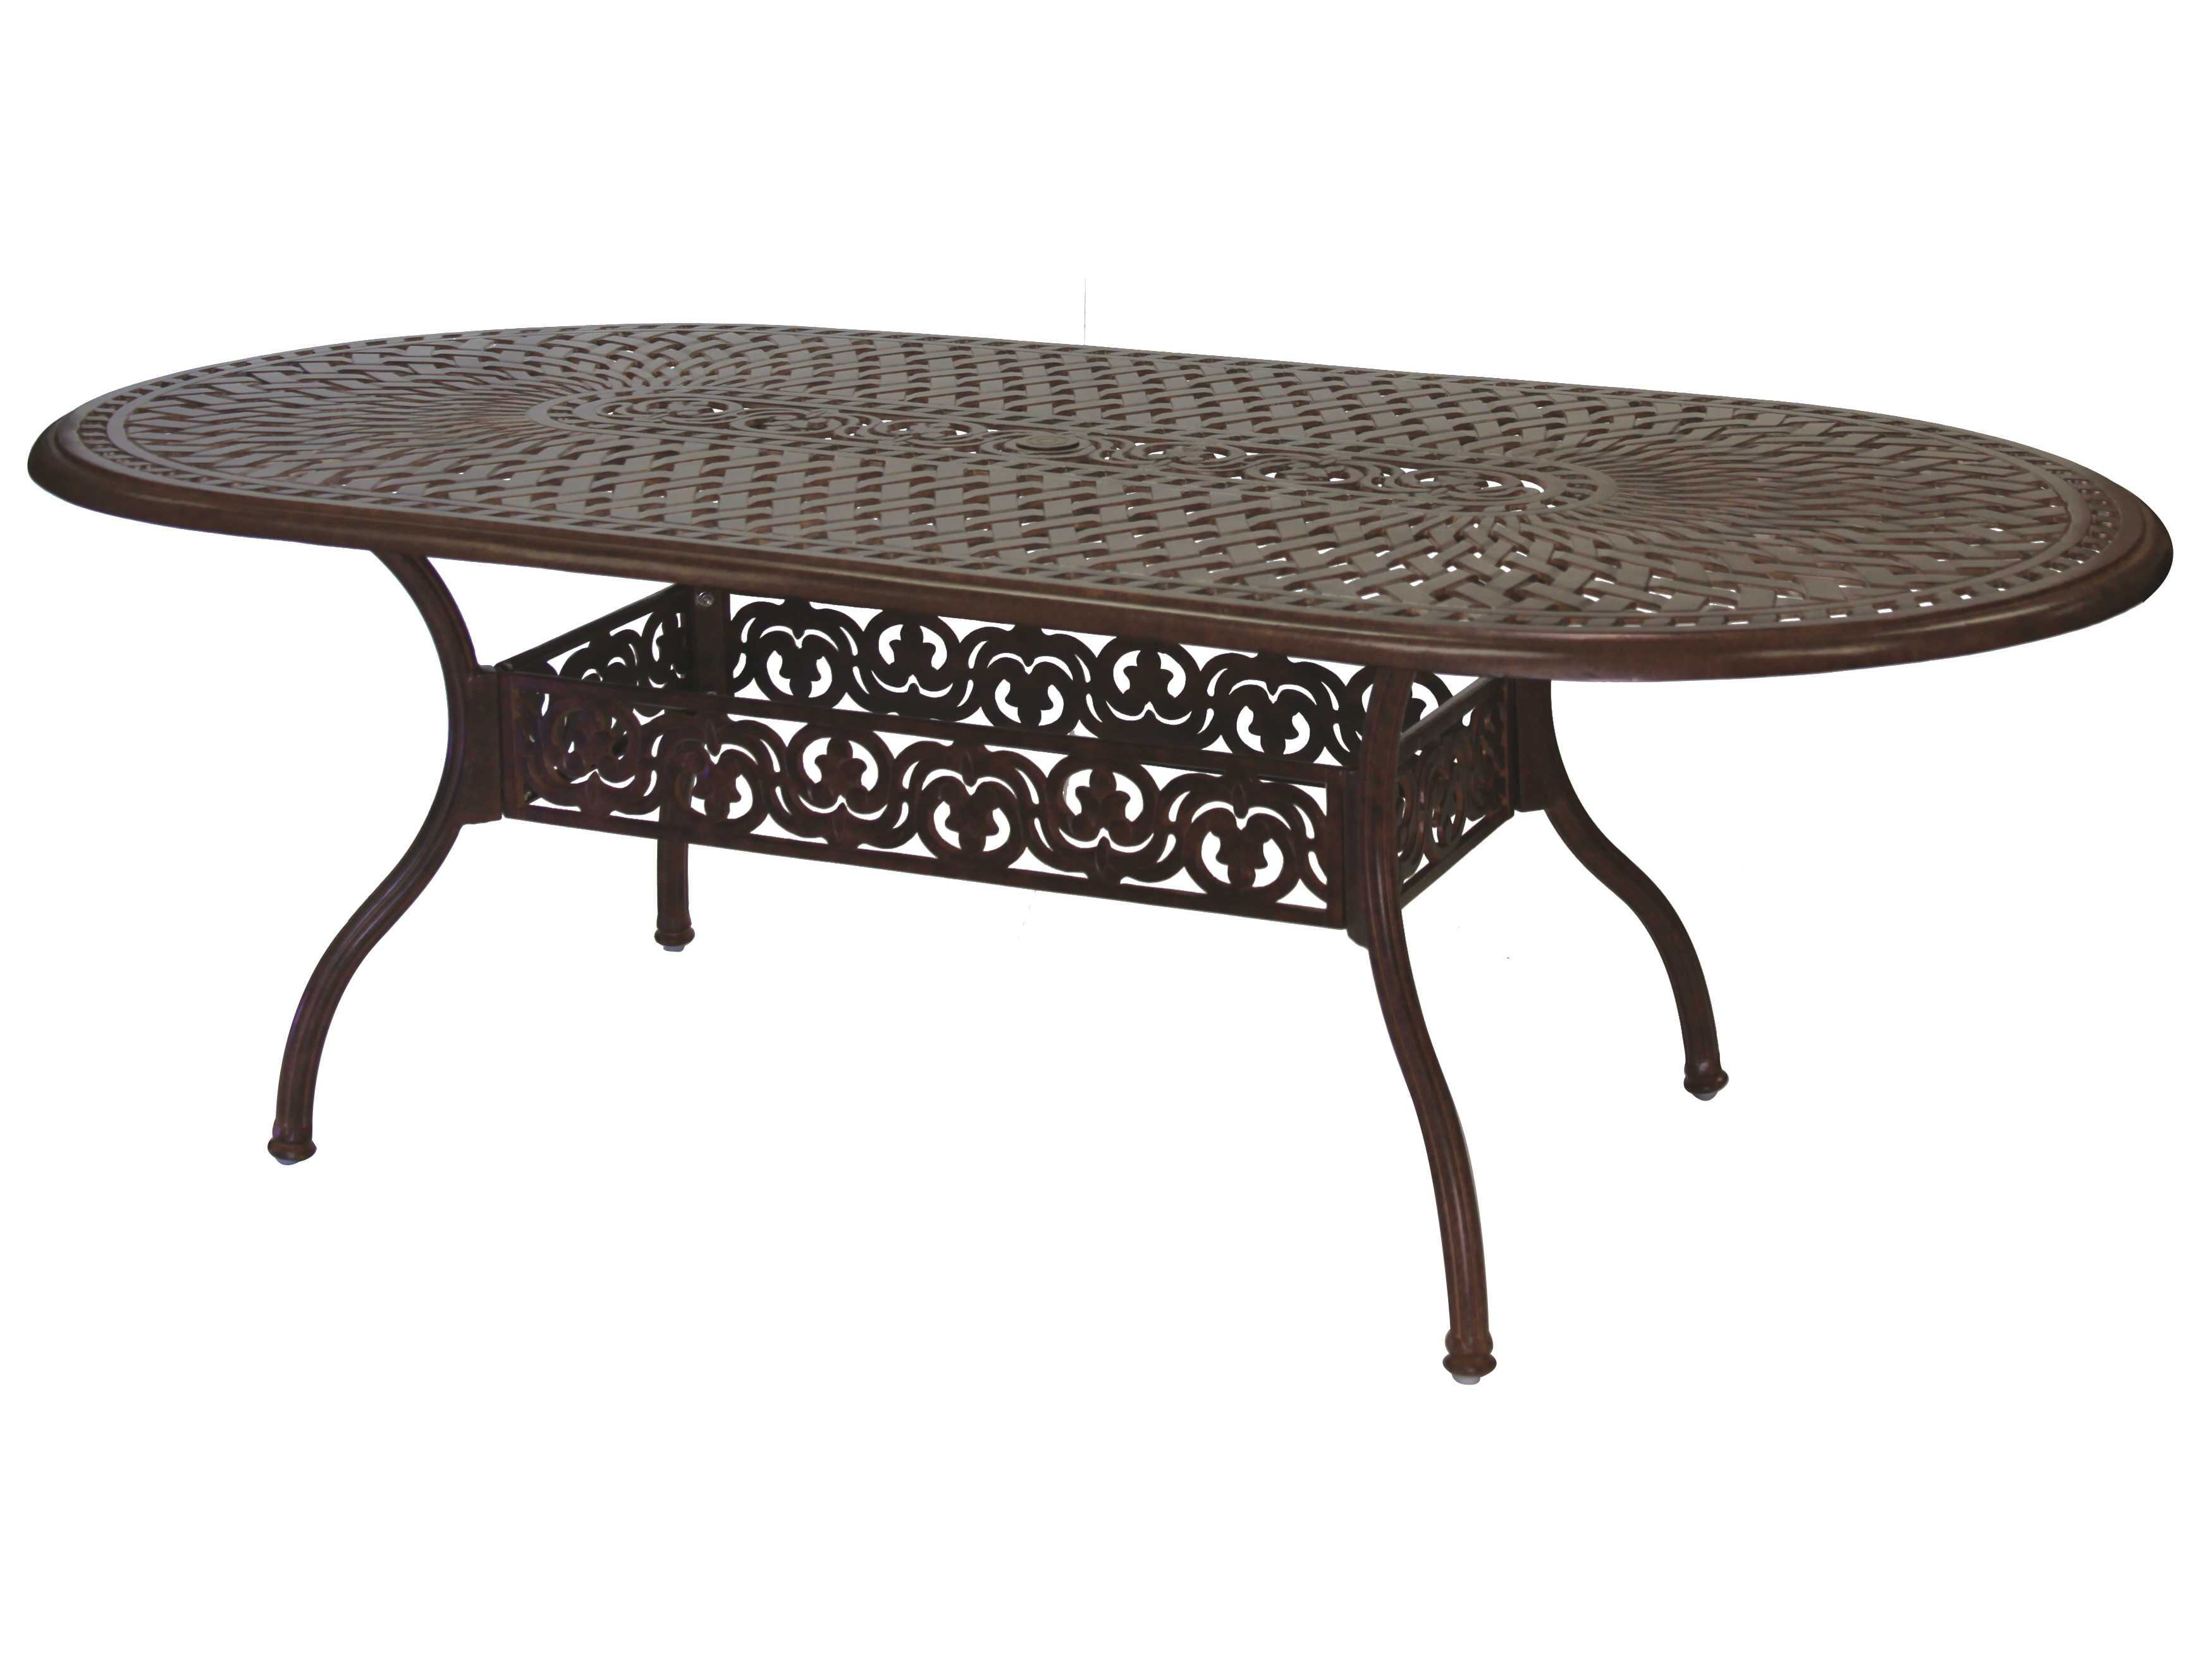 darlee outdoor living series 60 cast aluminum 84 x 42 oval dining table 201060 l. Black Bedroom Furniture Sets. Home Design Ideas